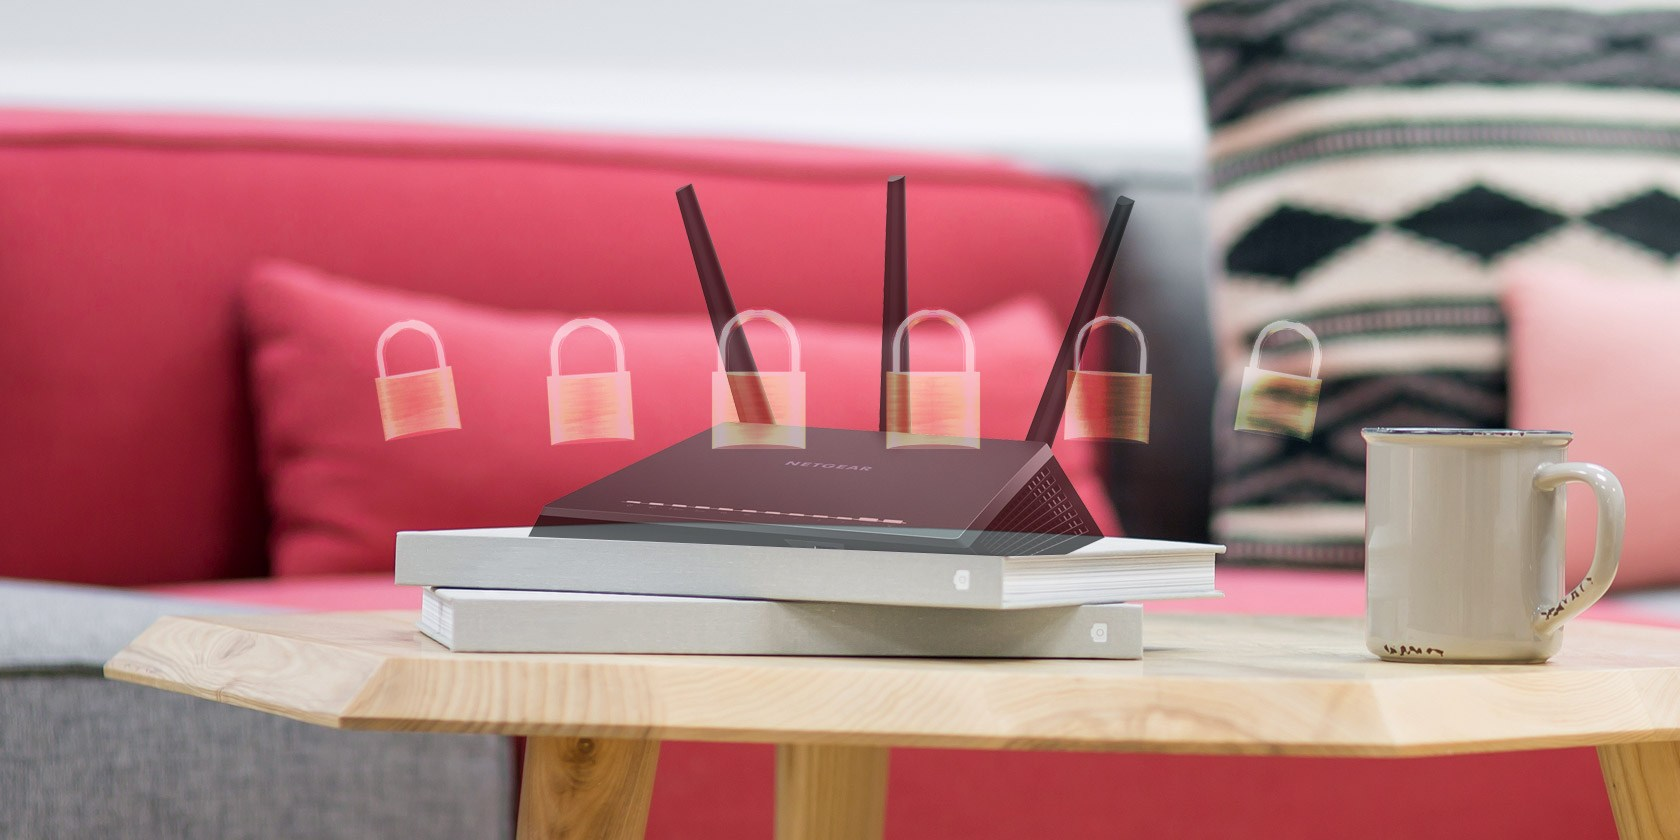 How to Hide Your Wi-Fi Network and Prevent It From Being Seen